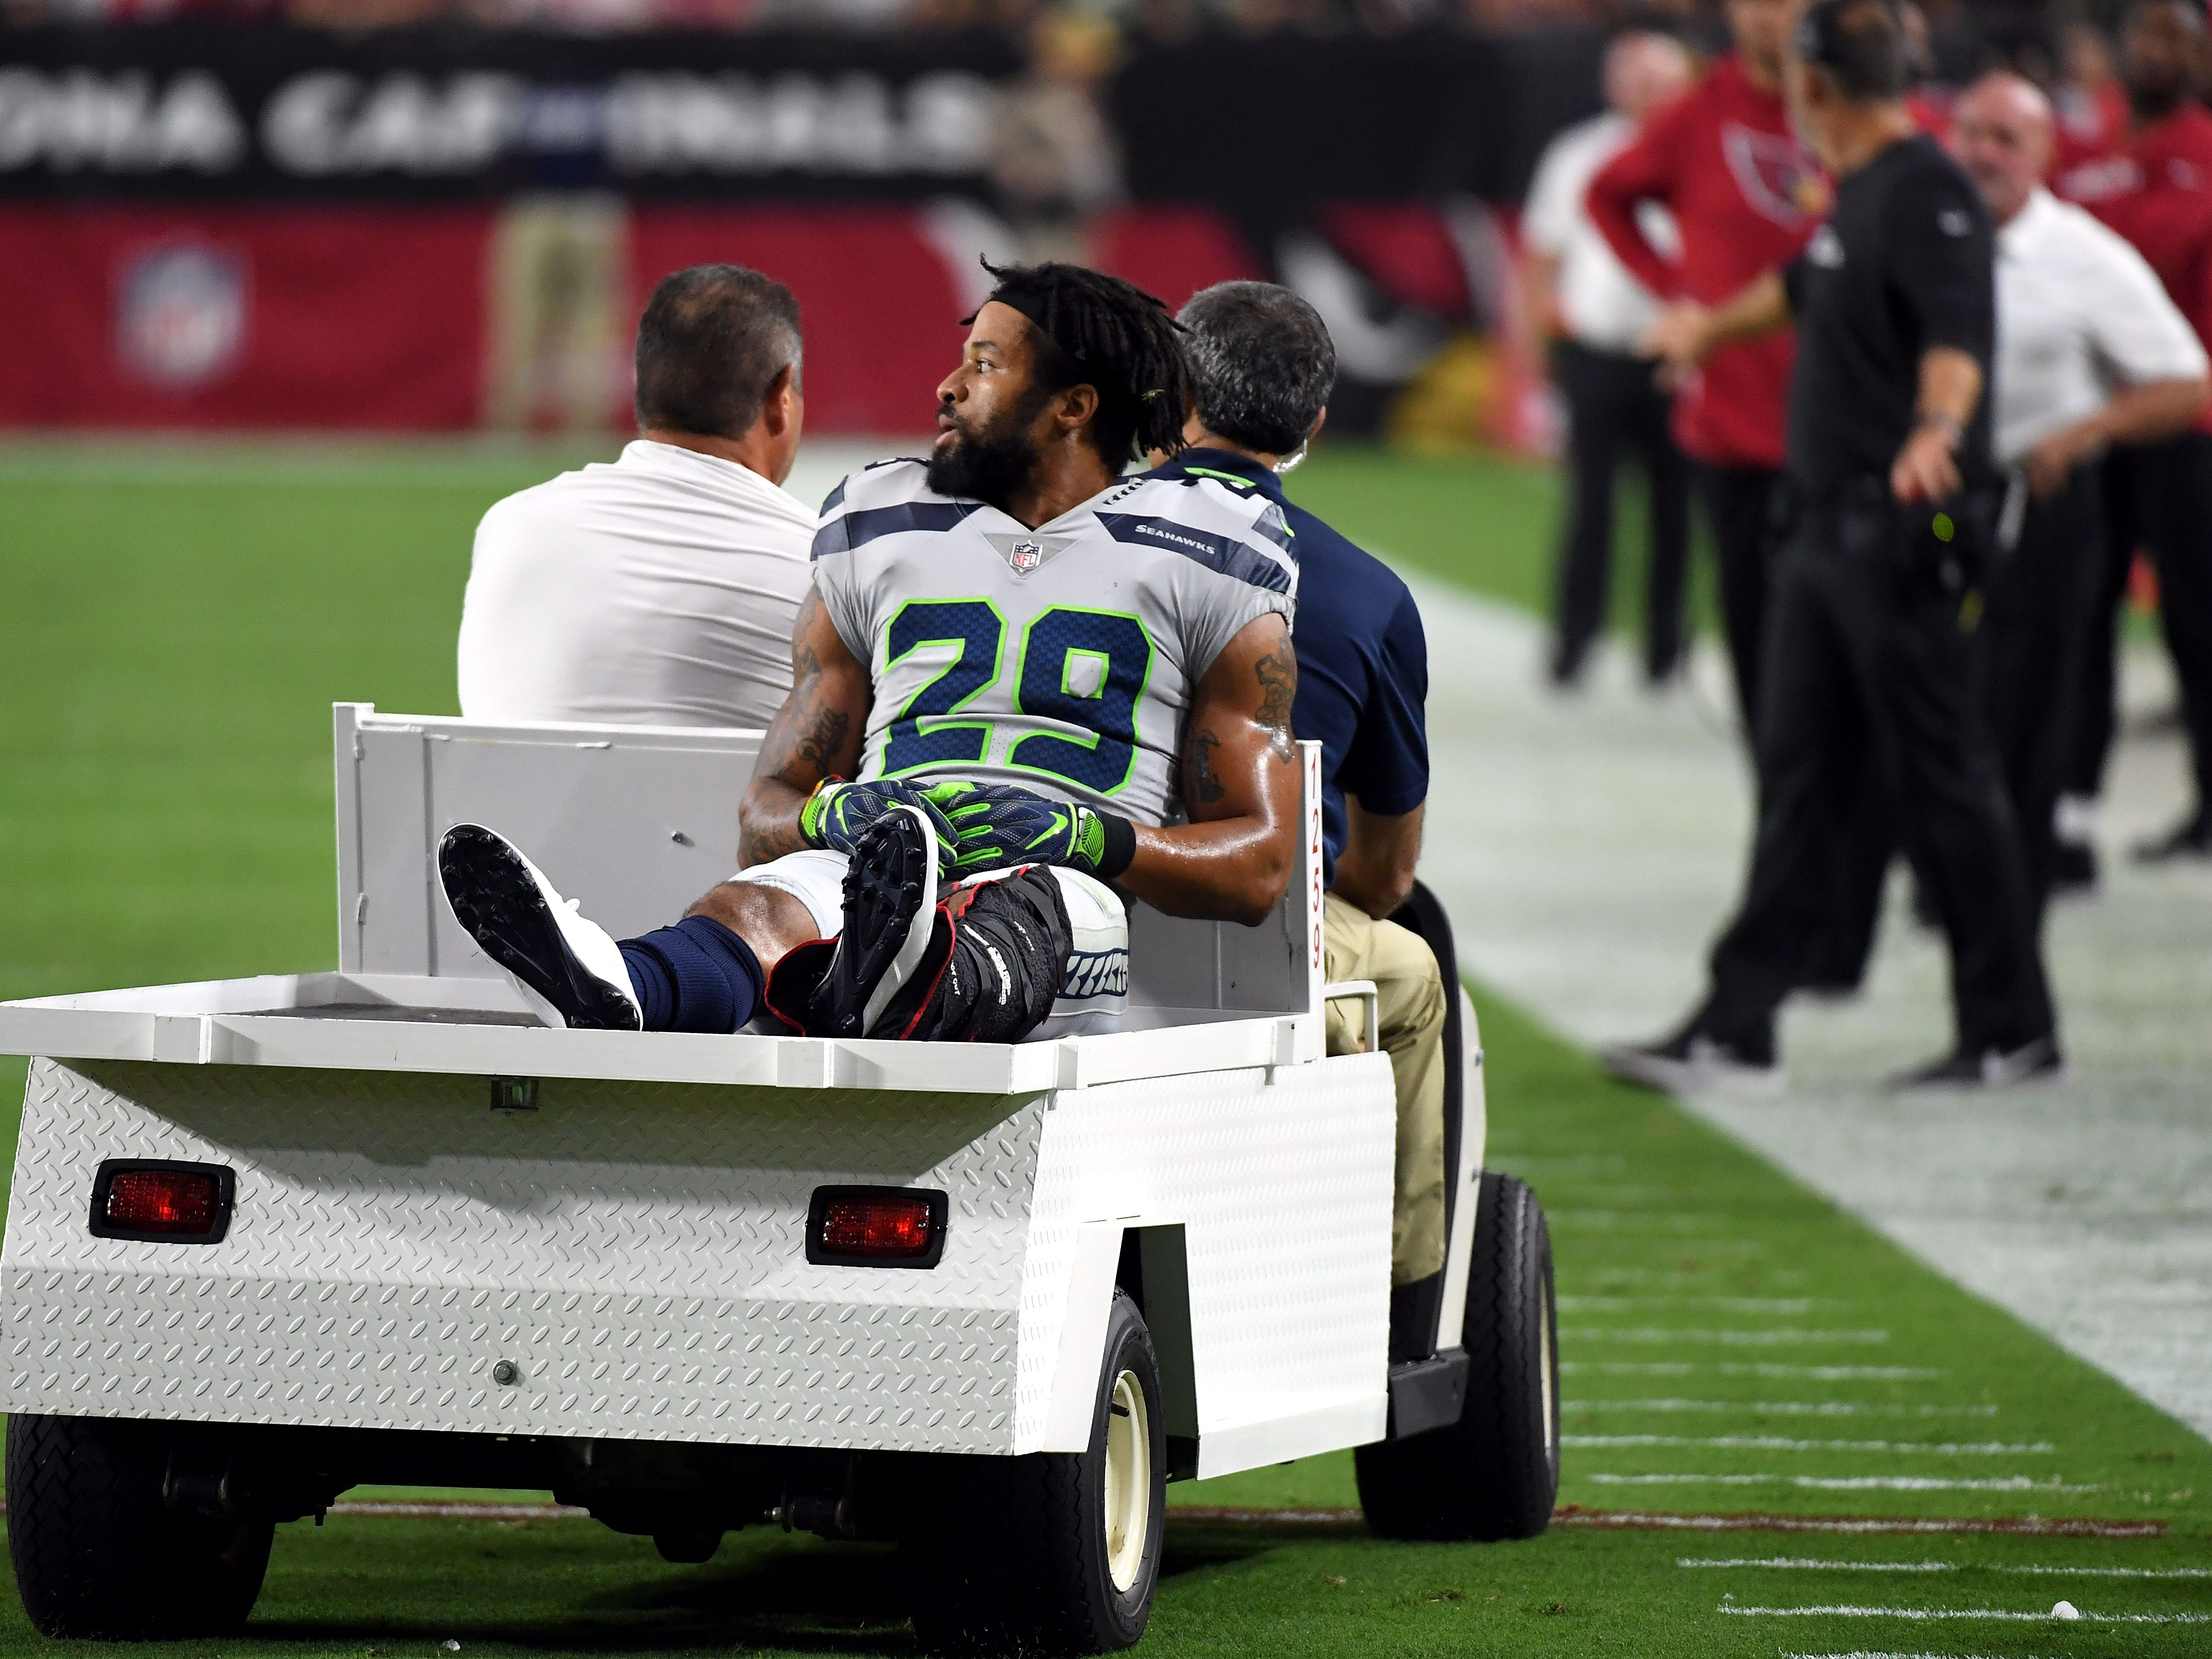 Earl Thomas, S, Seahawks (fractured lower leg, expected to miss rest of season)